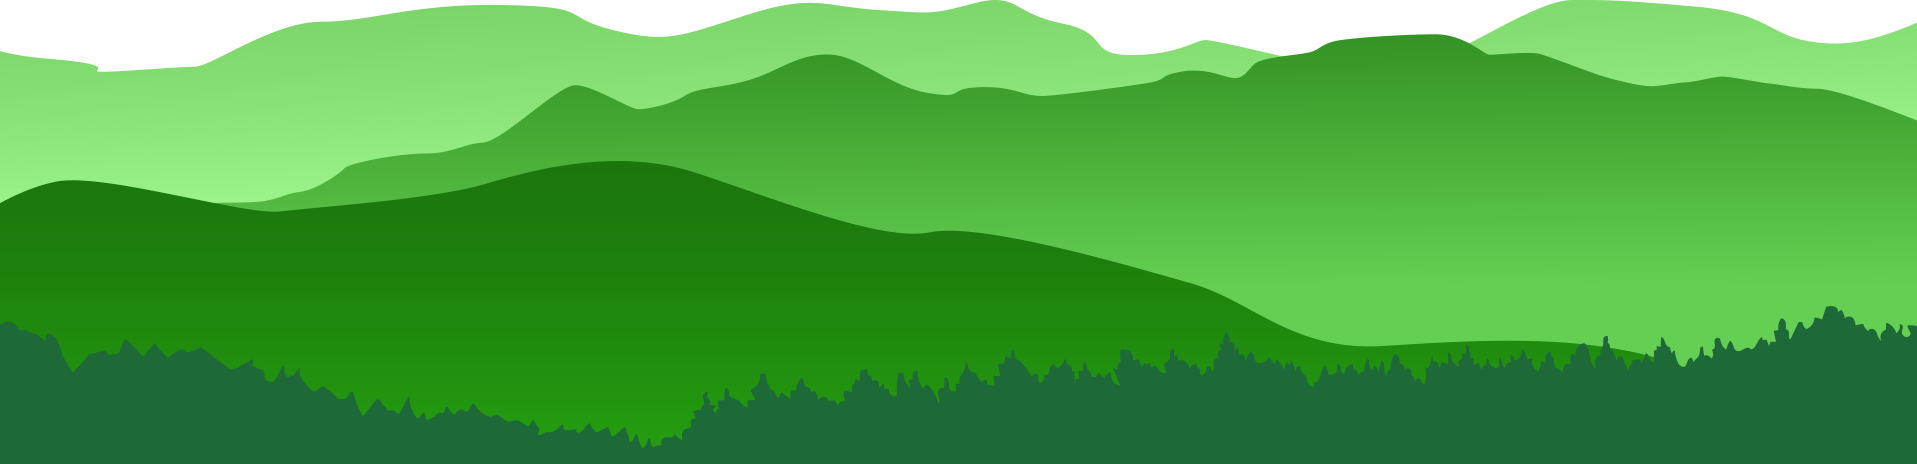 footer-top-green